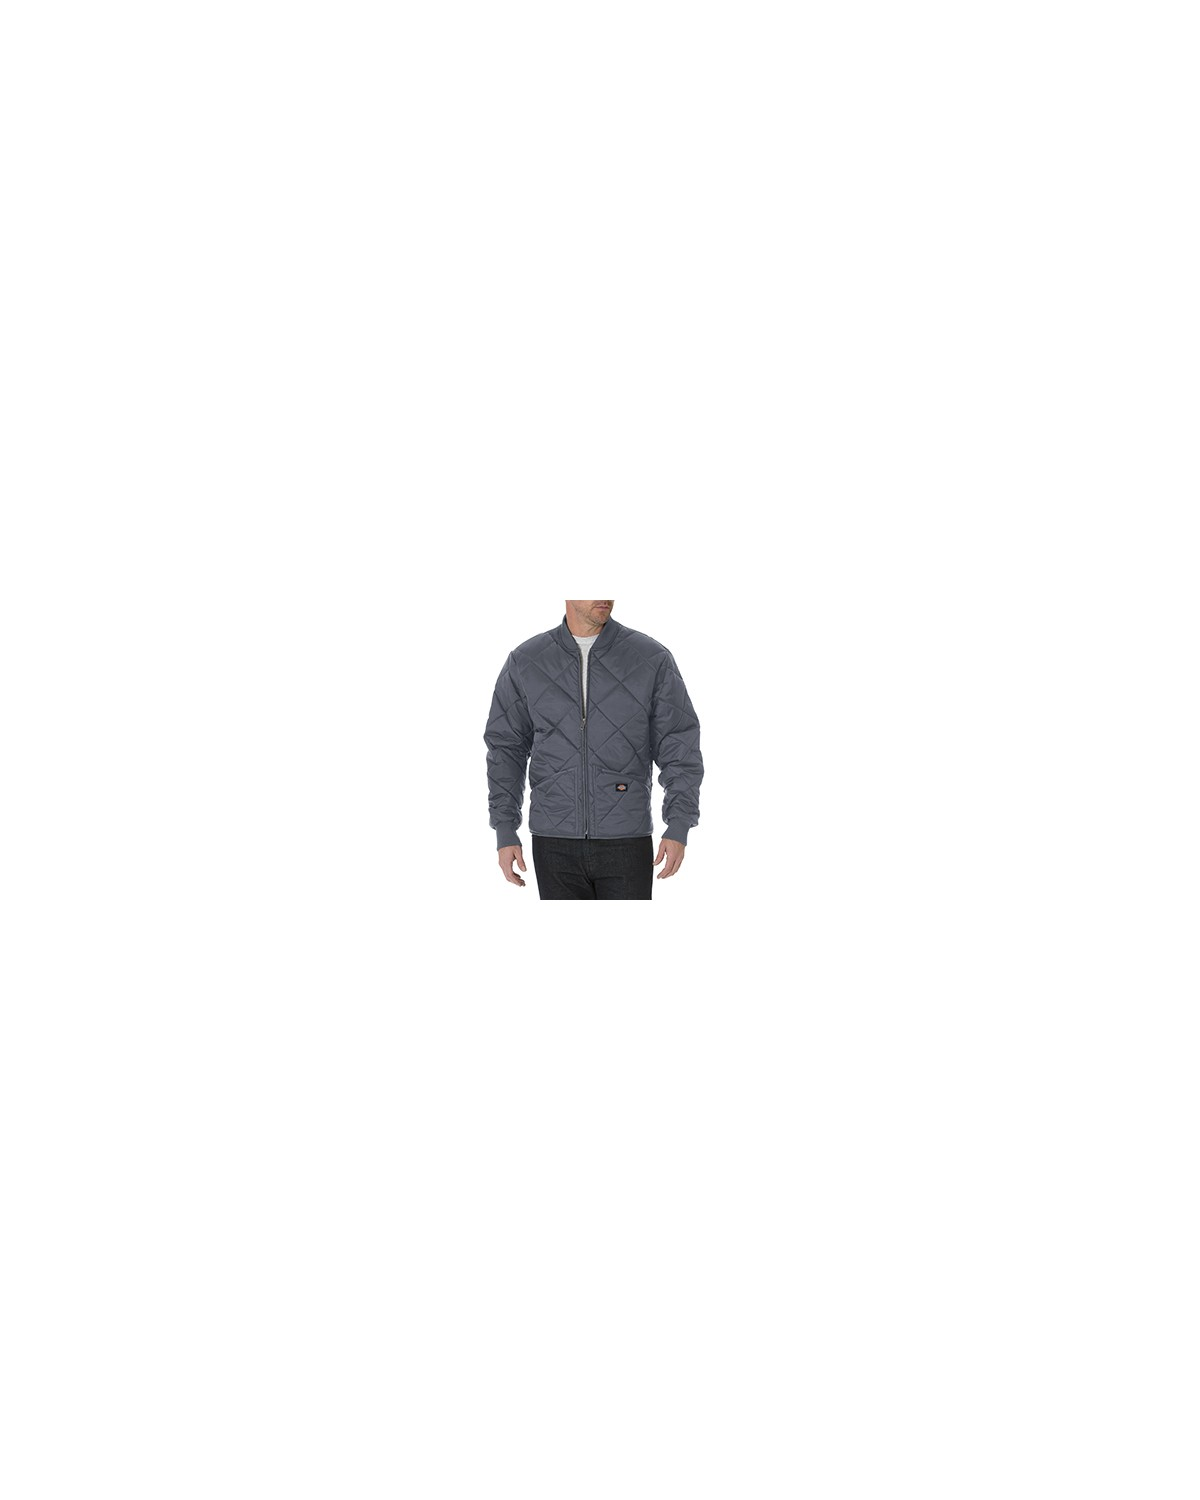 61242 Dickies Drop Ship CHARCOAL